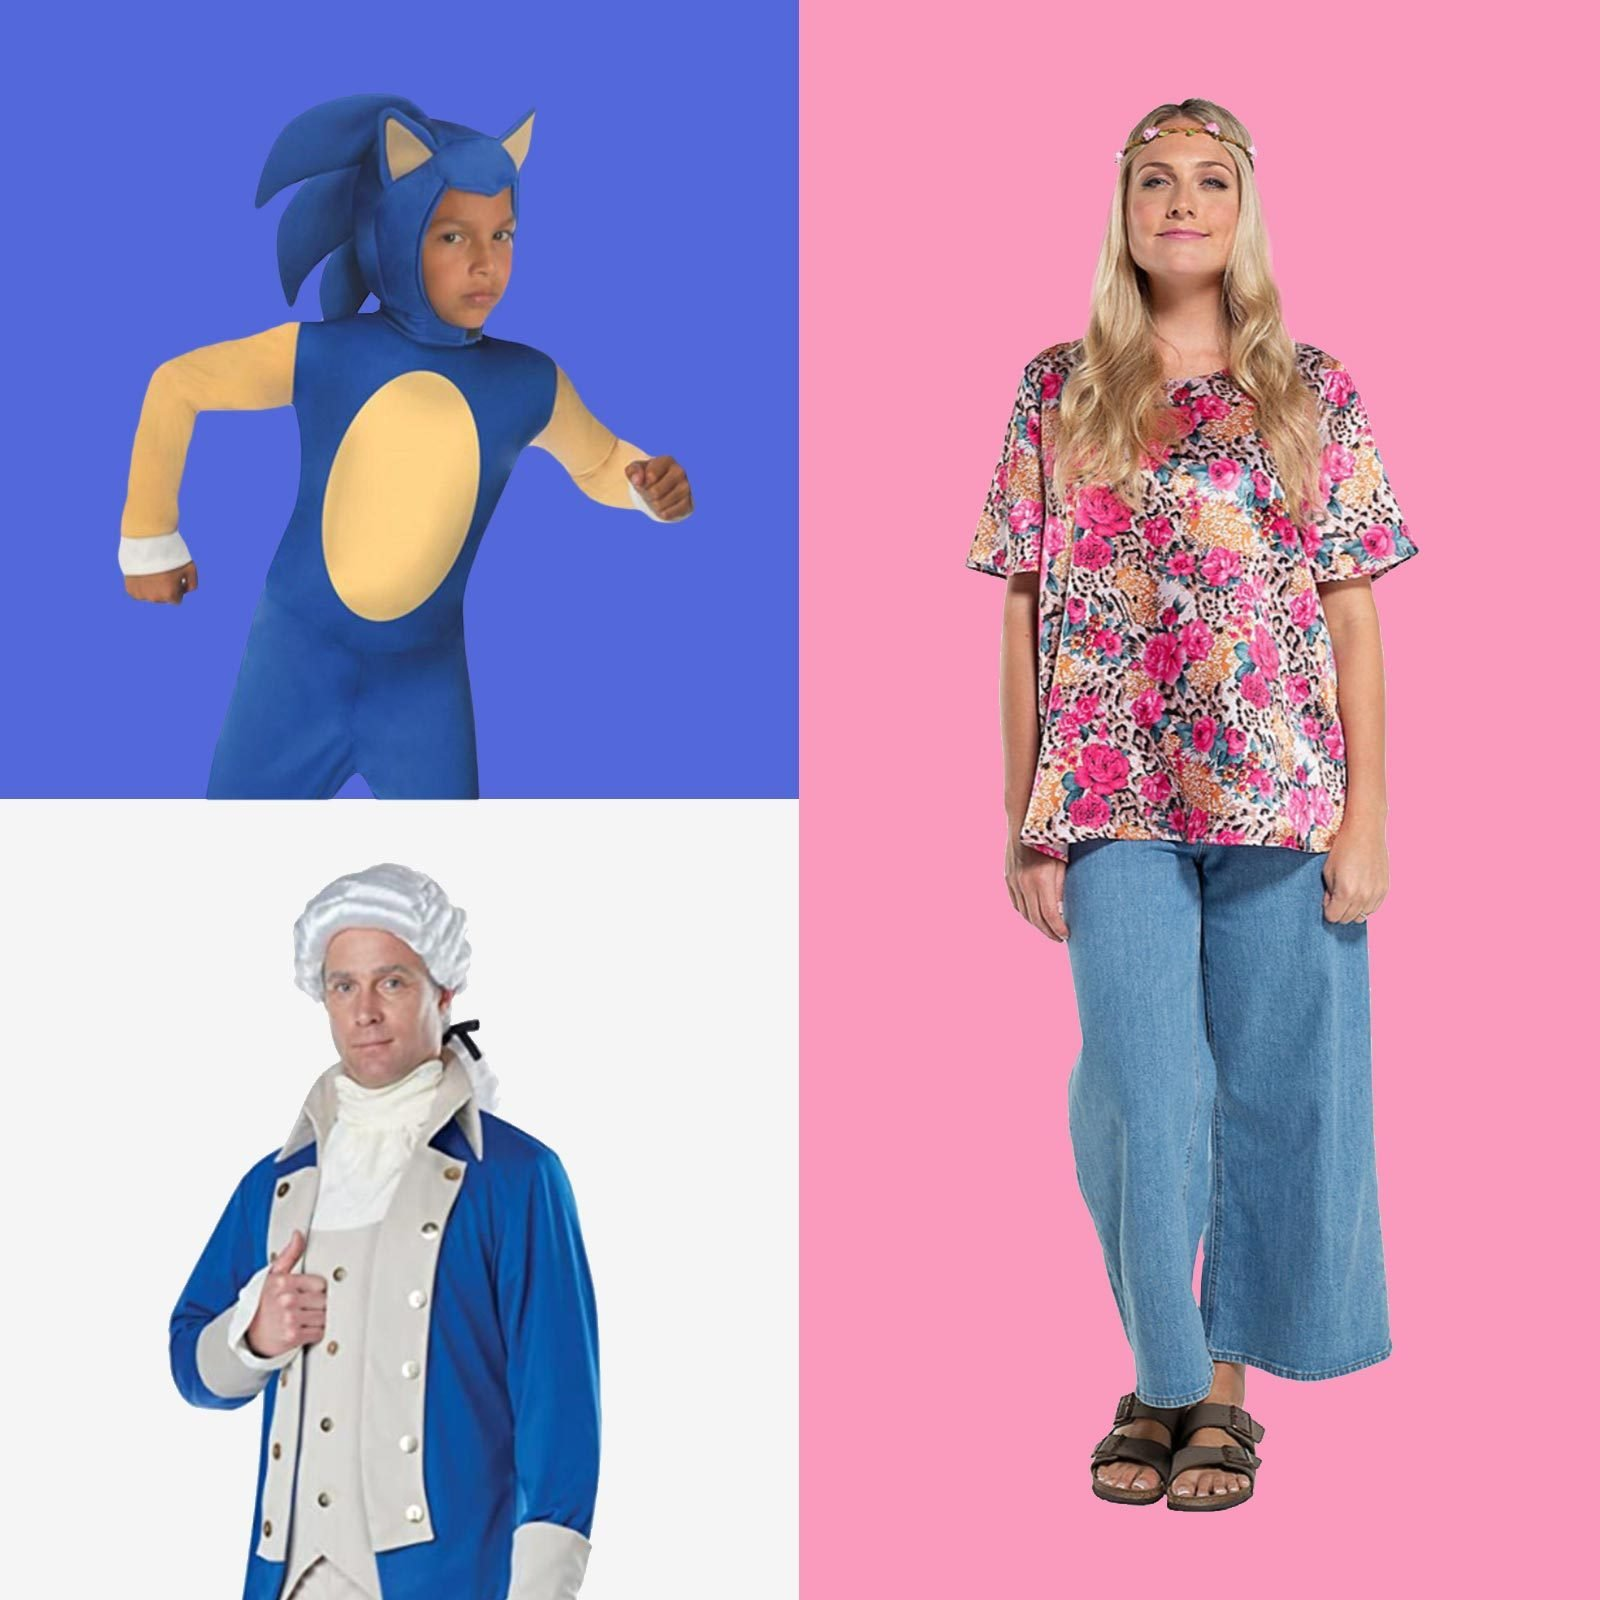 2020 Most Worn Halloween Costume Most Popular Halloween Costumes for 2020